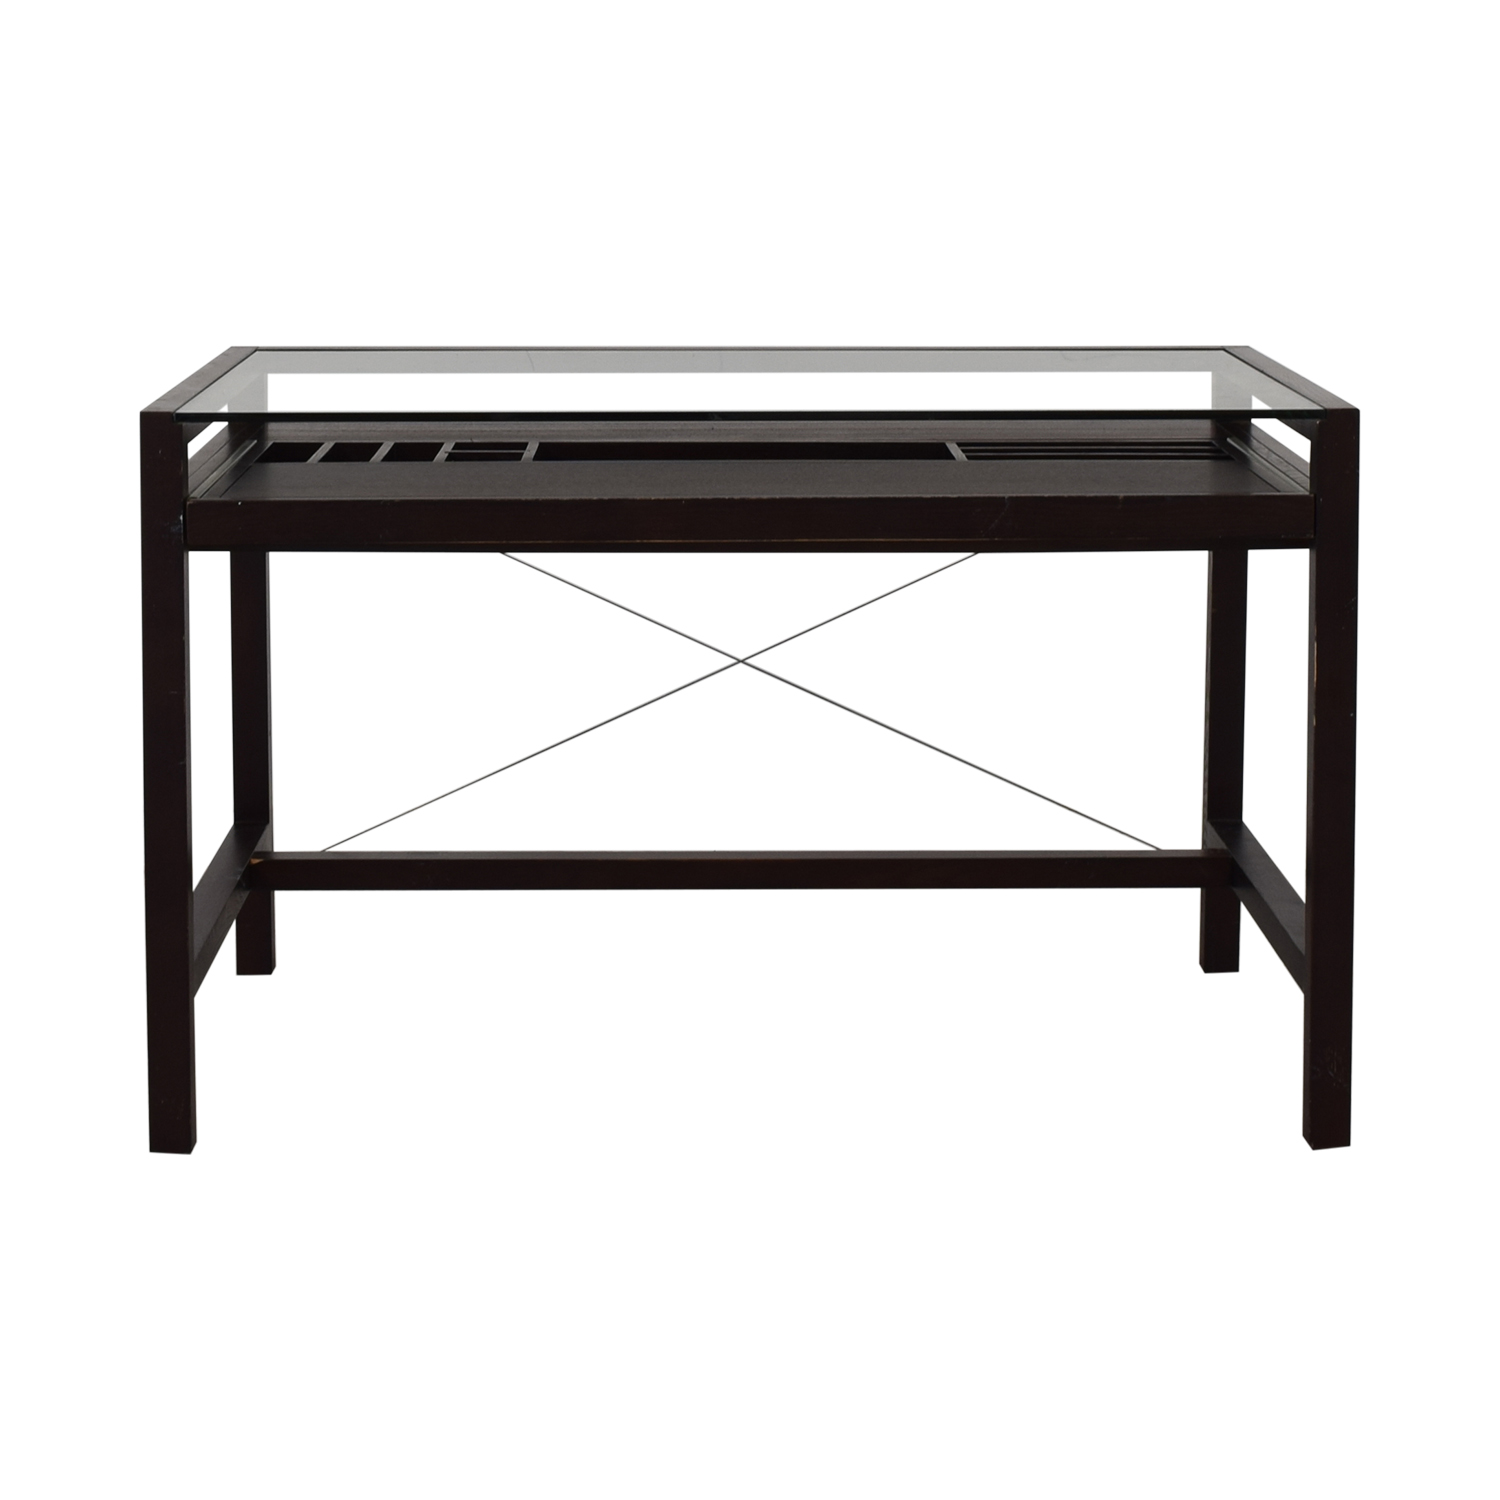 Crate & Barrel Crate & Barrel Glass and Wood Walker Desk on sale